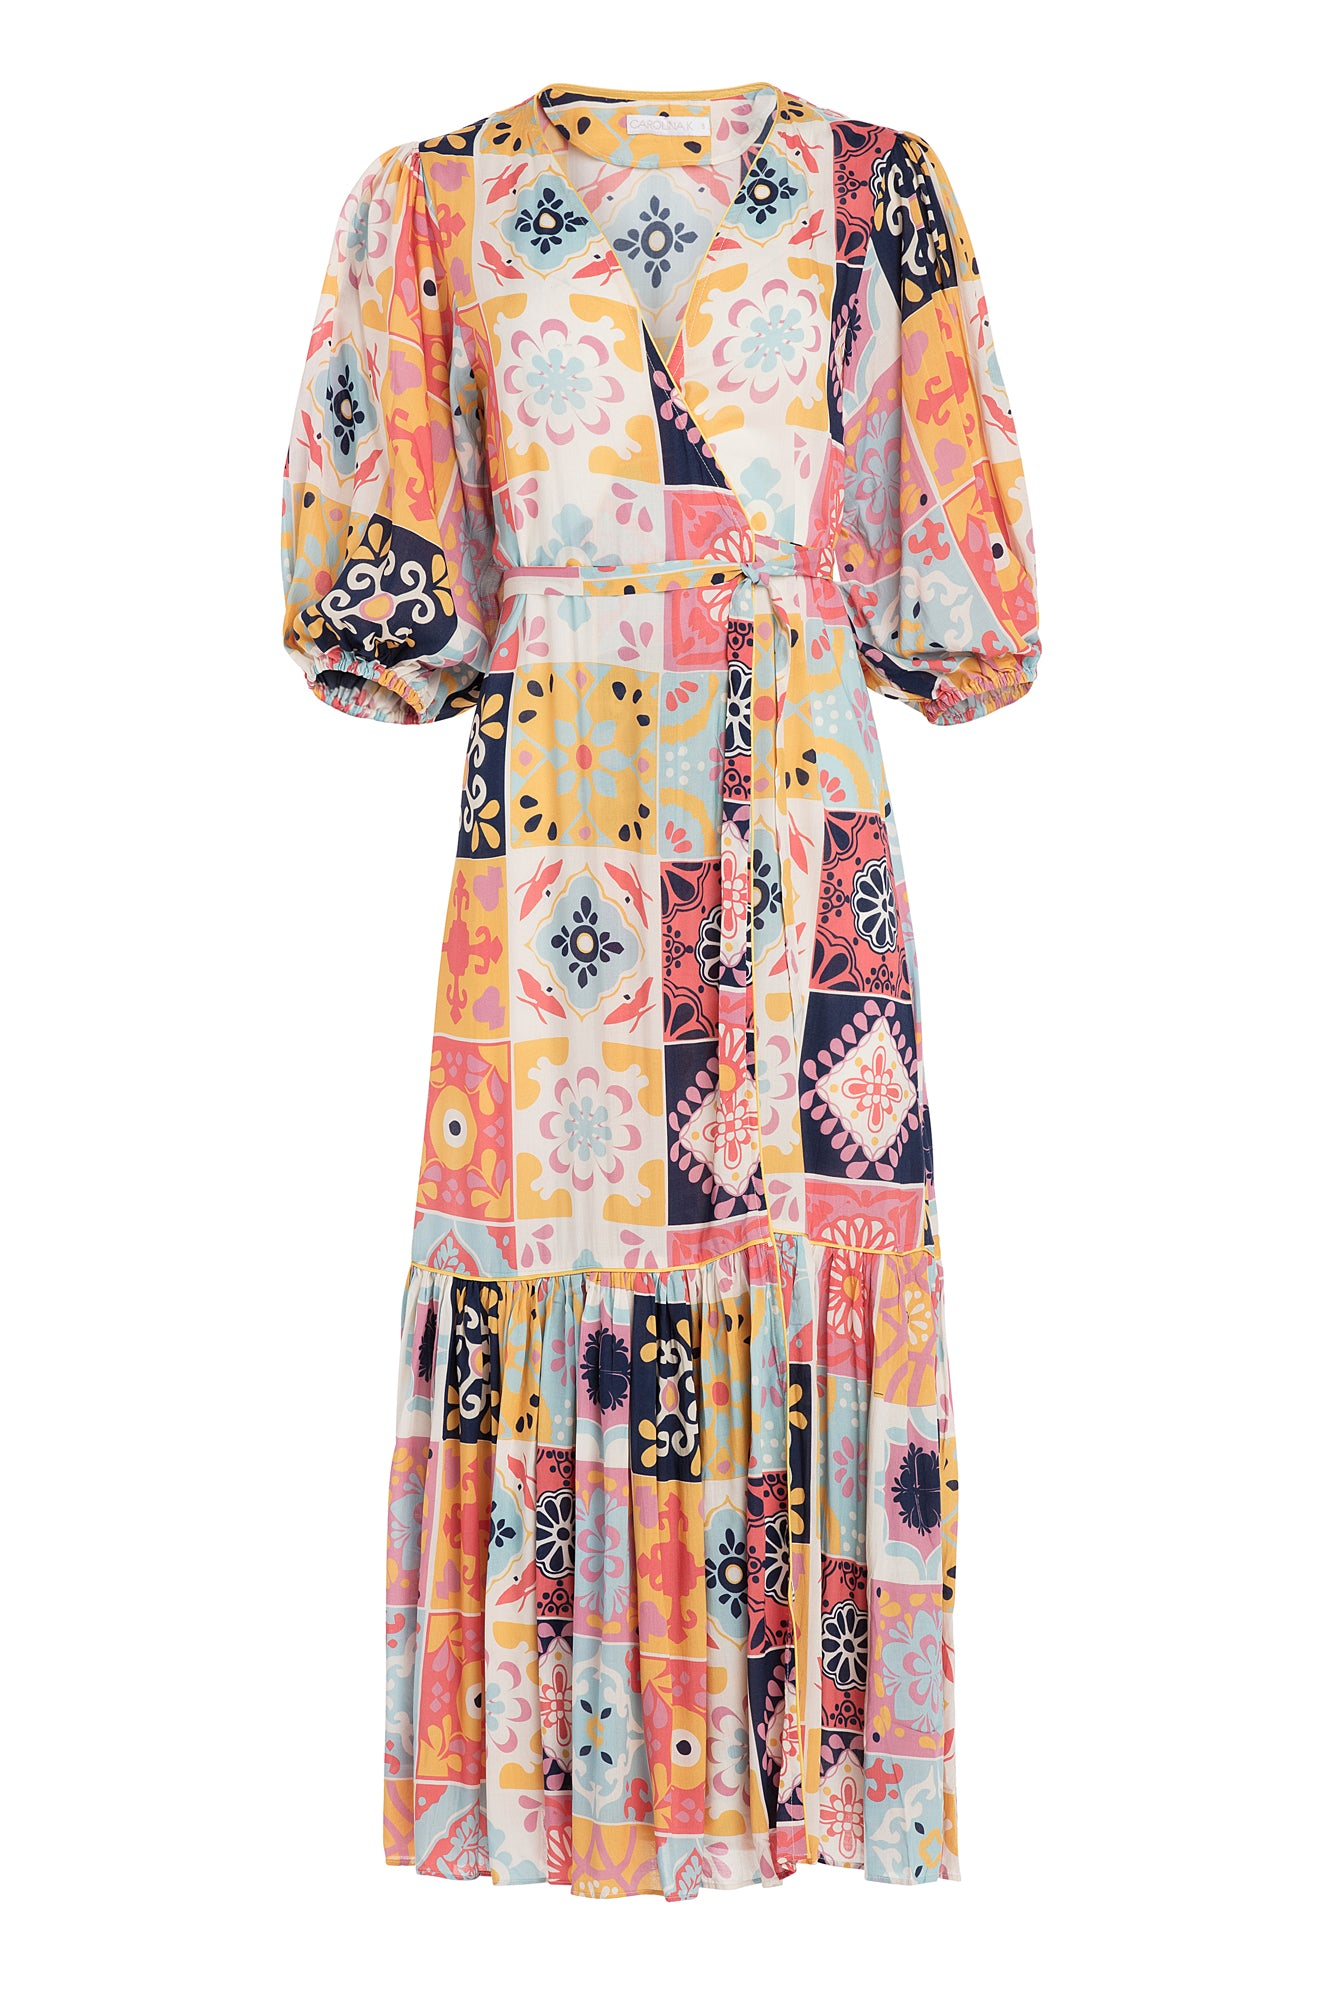 Carolina K Debra Robe in Terracotta Tile Multi